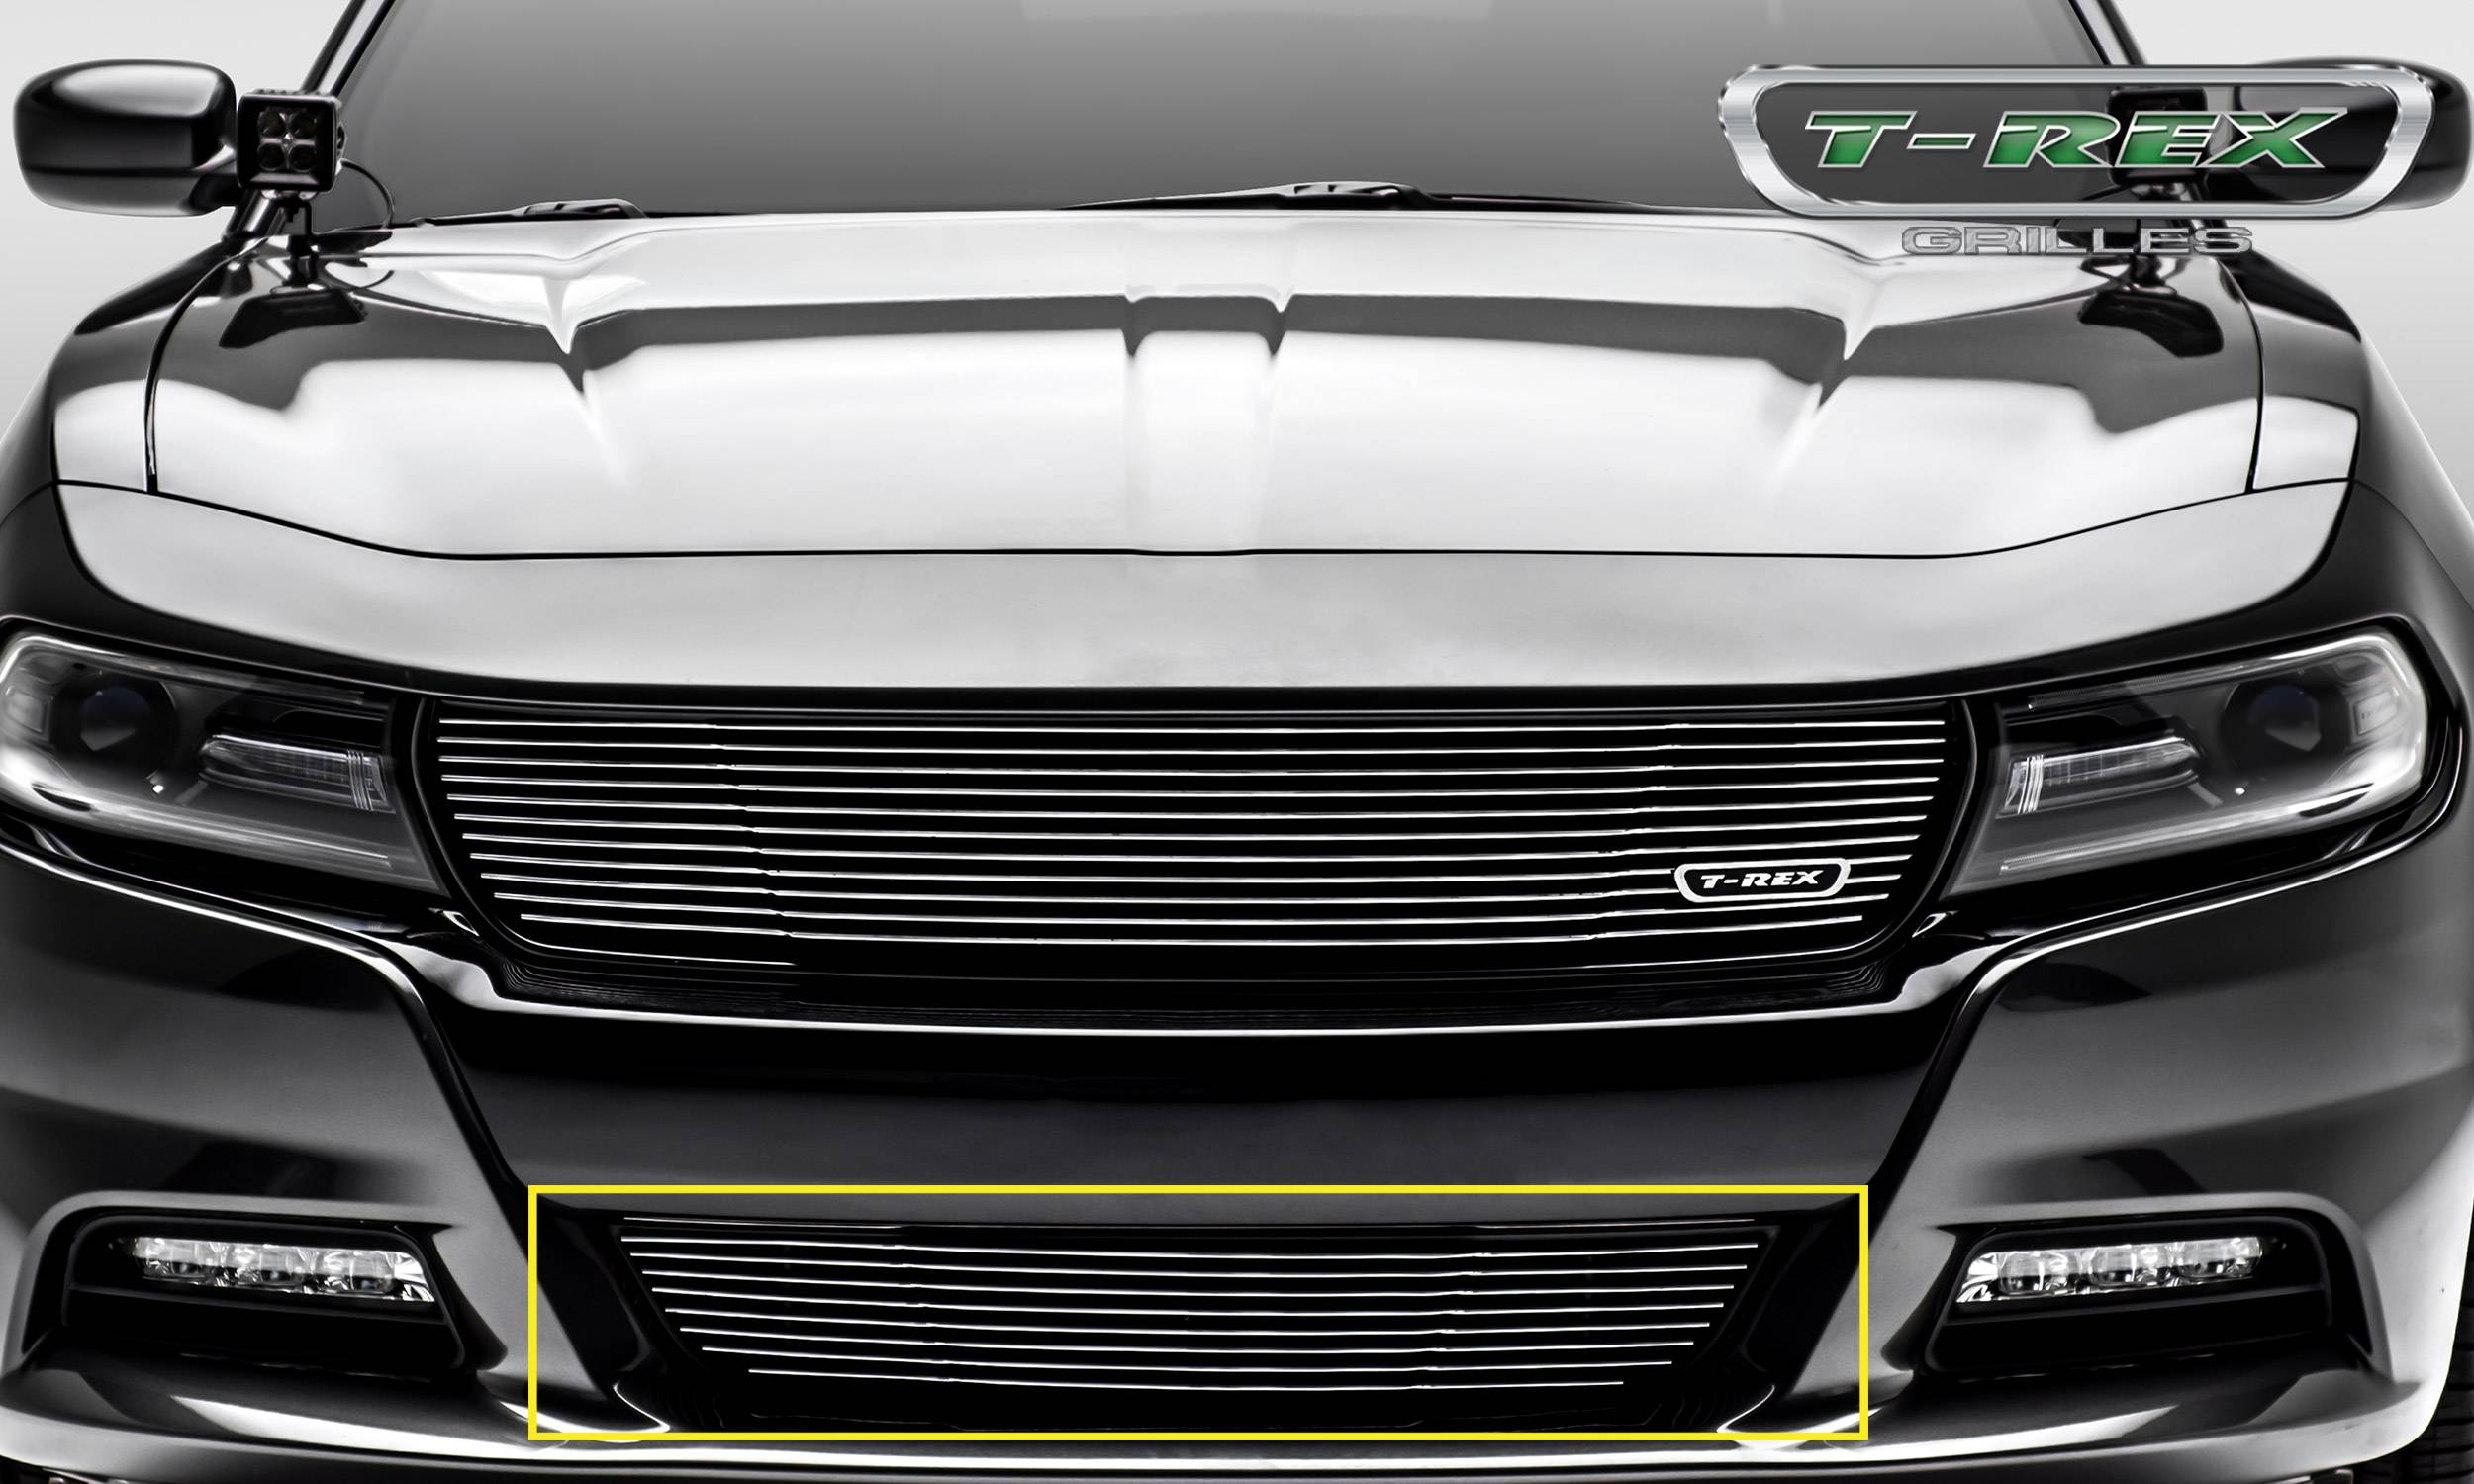 T-REX Dodge Charger - Laser Billet w/ 3-D Conturing - 1 Pc Bumper Grille - Overlay - Polished Finish - Pt # 6224760